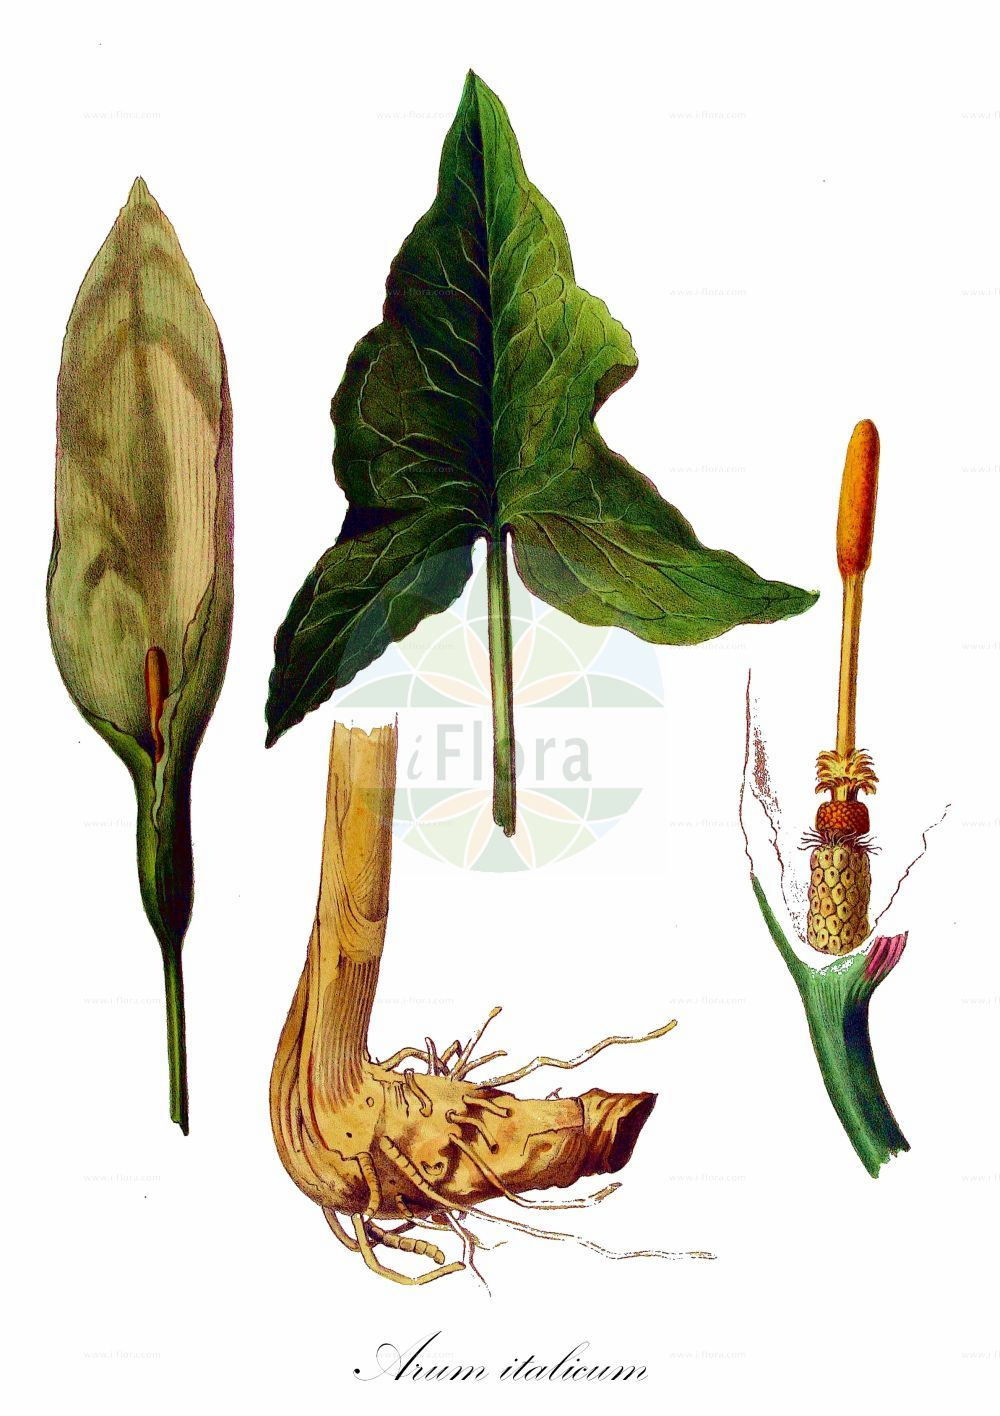 Historische Abbildung von Arum italicum. Das Bild zeigt Blatt, Bluete, Frucht und Same. ---- Historical Drawing of Arum italicum.The image is showing leaf, flower, fruit and seed. (Arum italicum,Arisarum italicum,Arum maculatum var. italicum,Arum,Aronstab,Arum Lily,Araceae,Aronstabgewaechse,Arum Lily family,Blatt,Bluete,Frucht,Same,leaf,flower,fruit,seed,Kops (1800-1934))